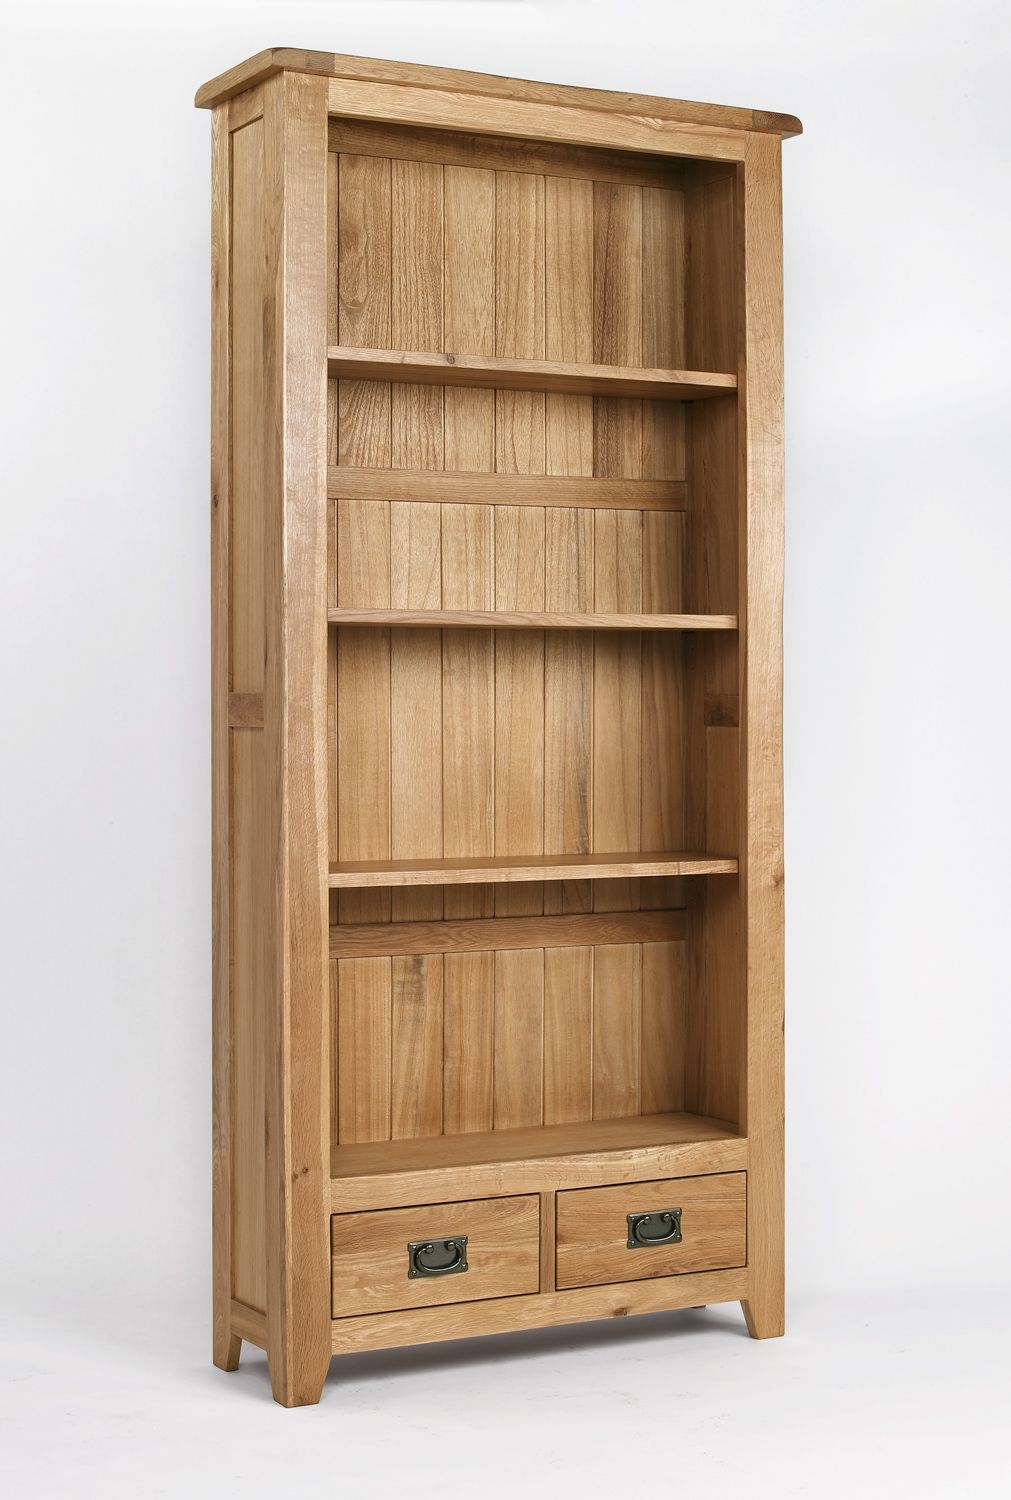 how to build a tall bookcase - Google Search